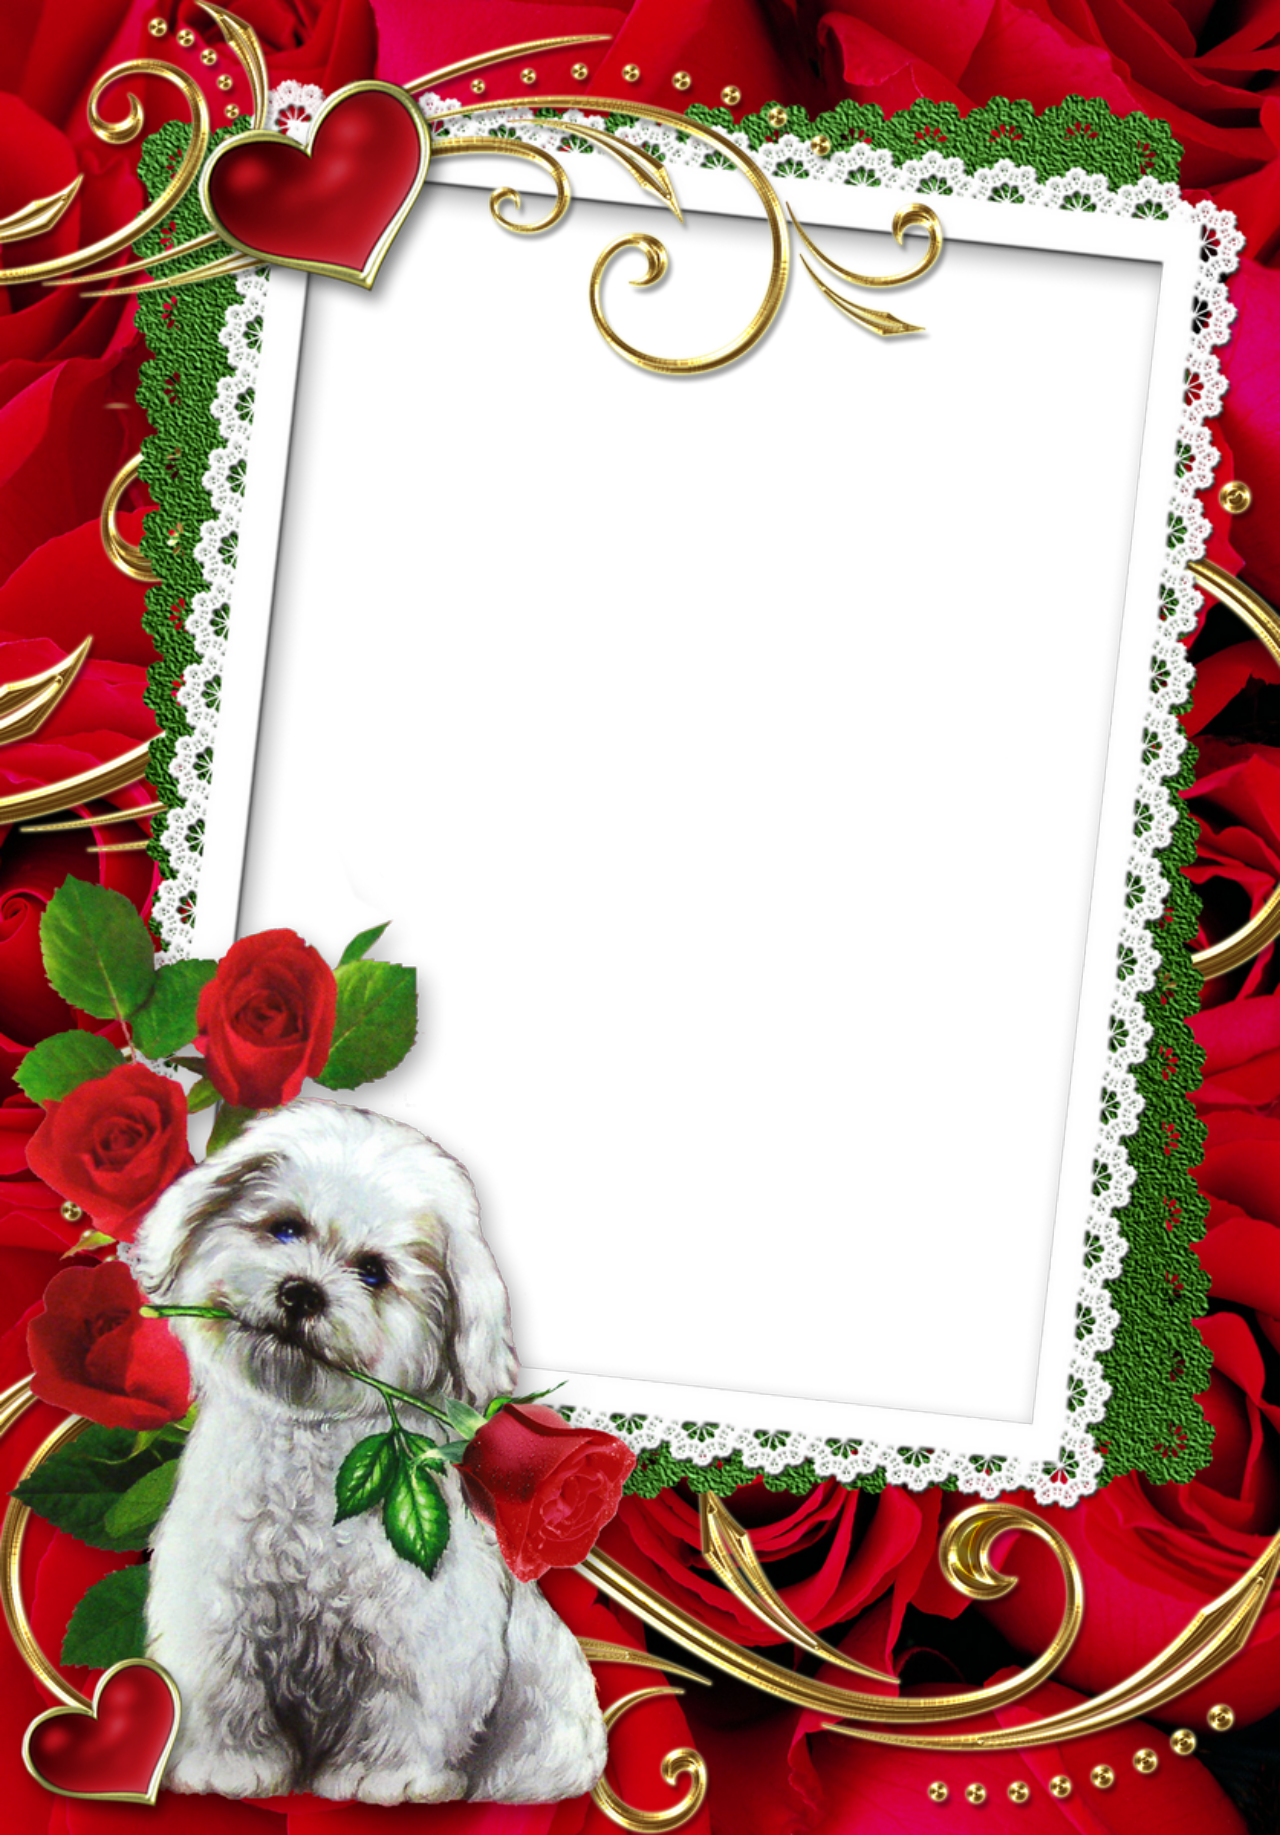 Rose Frames Wallpapers High Quality | Download Free